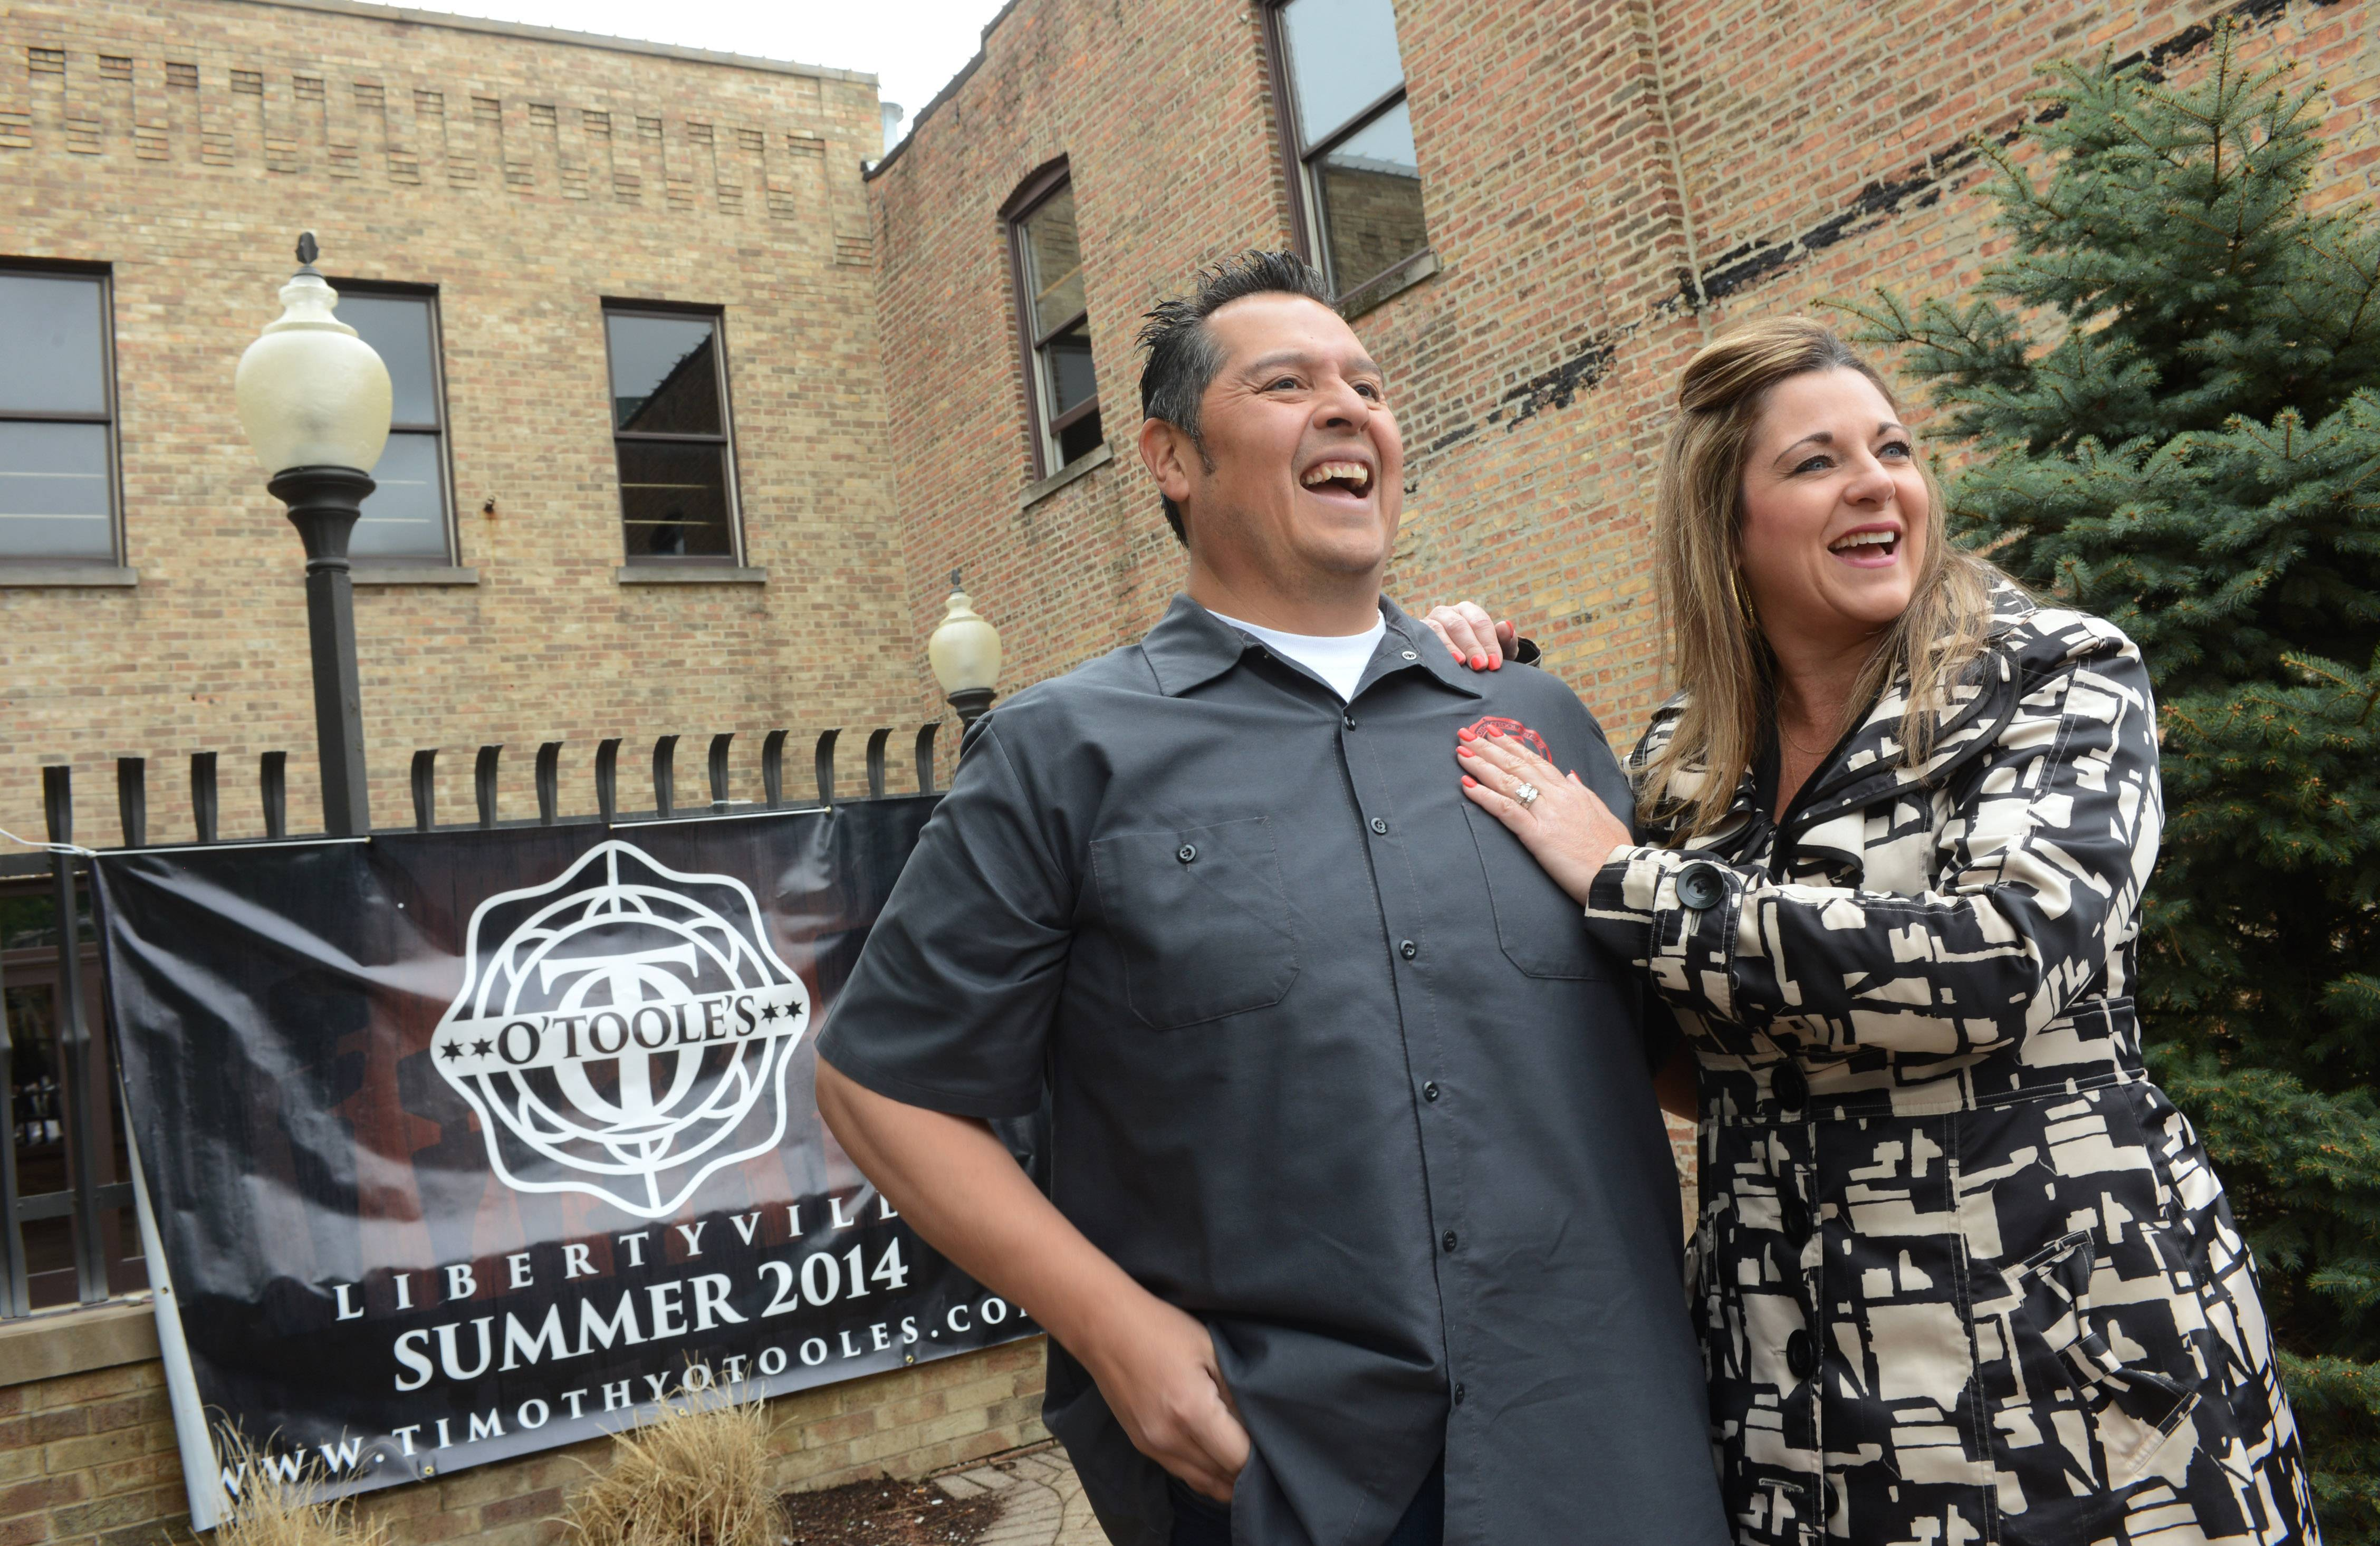 Neighborhood feel the key to new restaurant venture in Libertyville